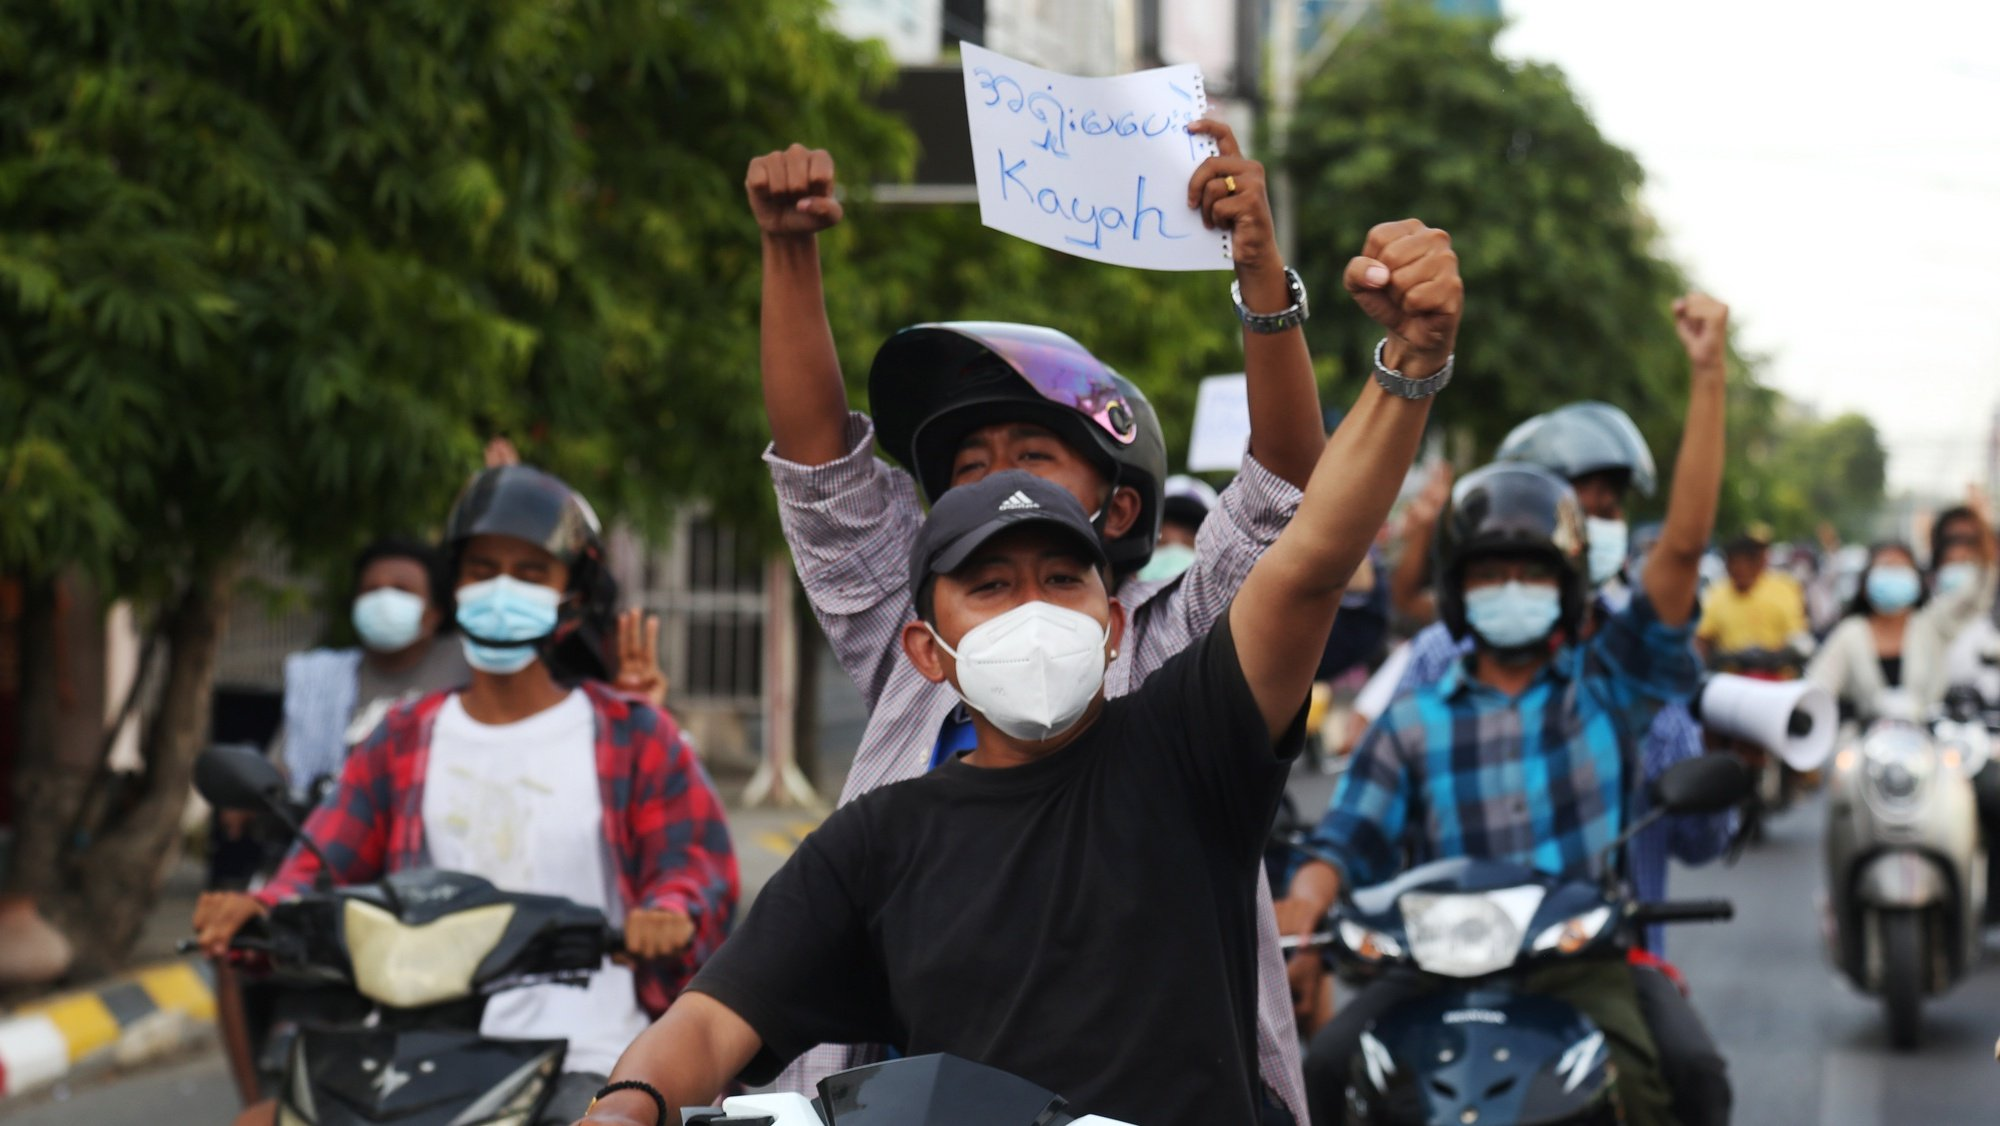 epa09217702 Demonstrators gesture and hold a placard reading 'Don't surrender, Kayah' while riding on motorcycles during a protest against the military coup in Mandalay, Myanmar, 21 May 2021. At least 800 people have been killed by Myanmar armed forces and more than 4,000 detained since the military seized power on 01 February 2021, according to the Assistance Association for Political Prisoners (AAPP).  EPA/STRINGER